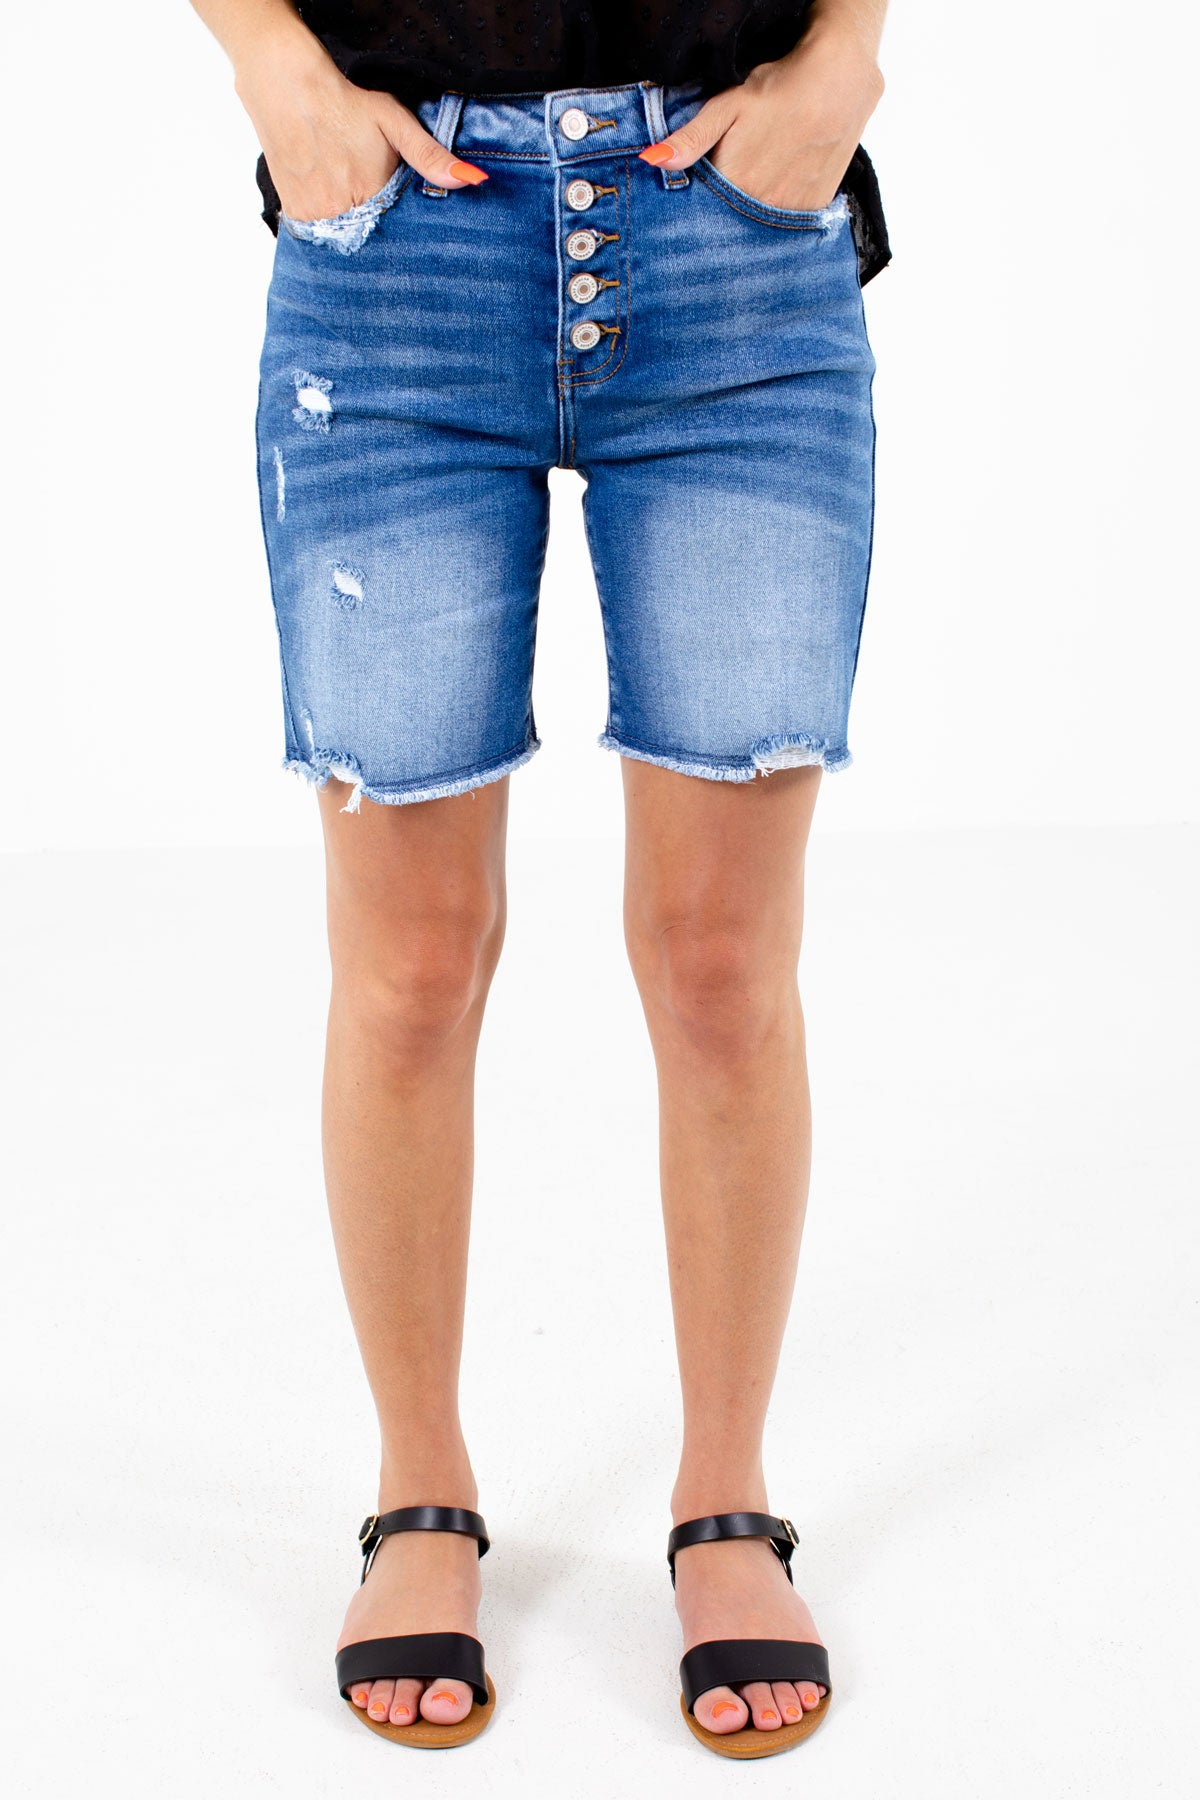 Blue Button-Up Front Boutique Shorts for Women